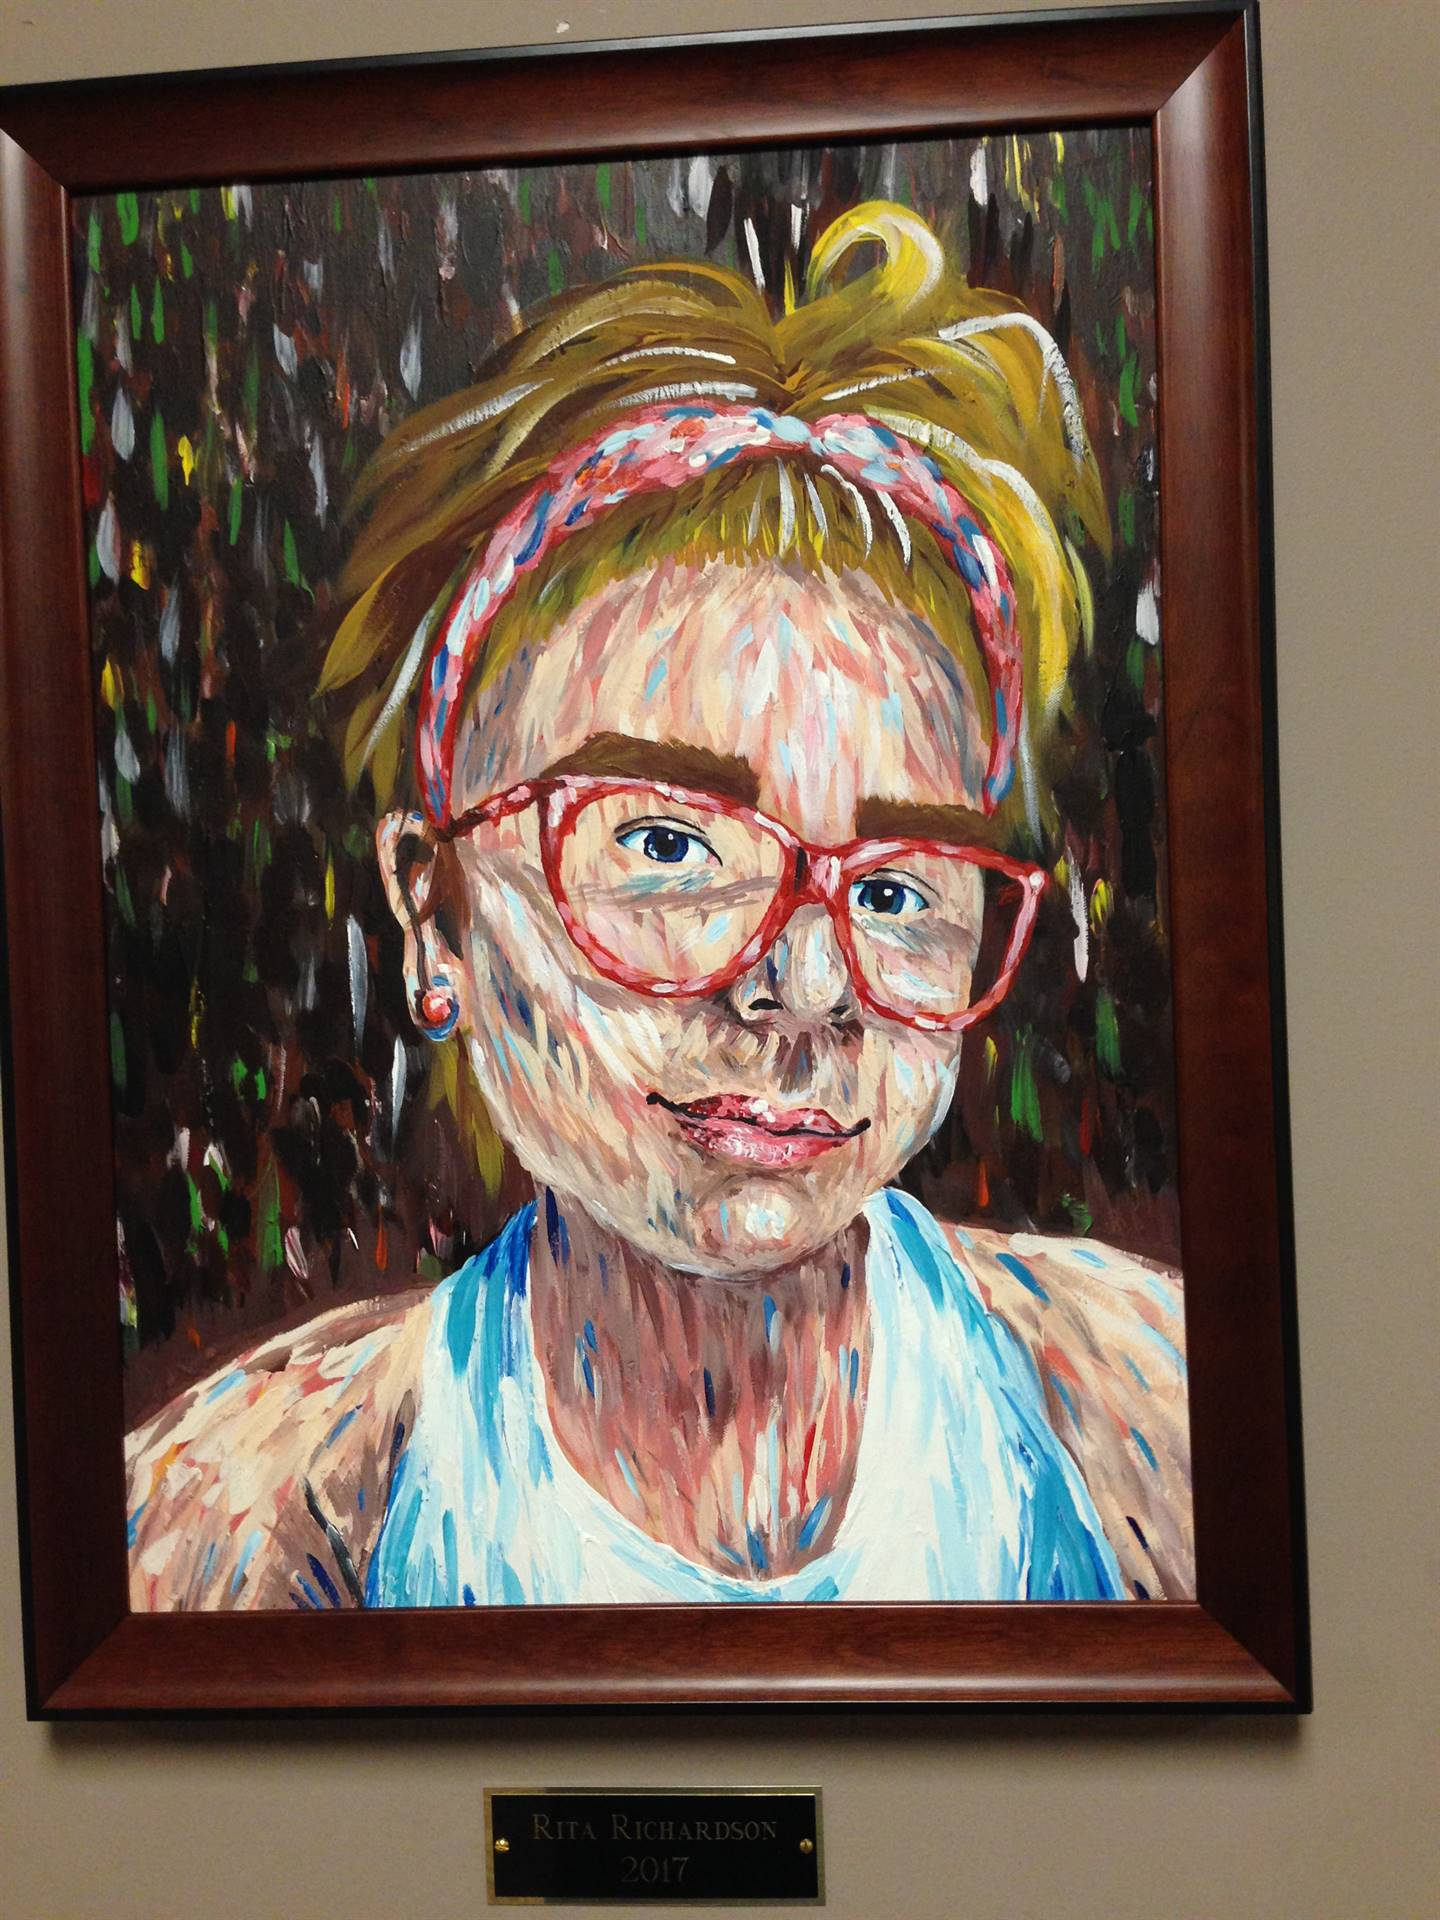 Artwork Young Girl with Headband & Glasses